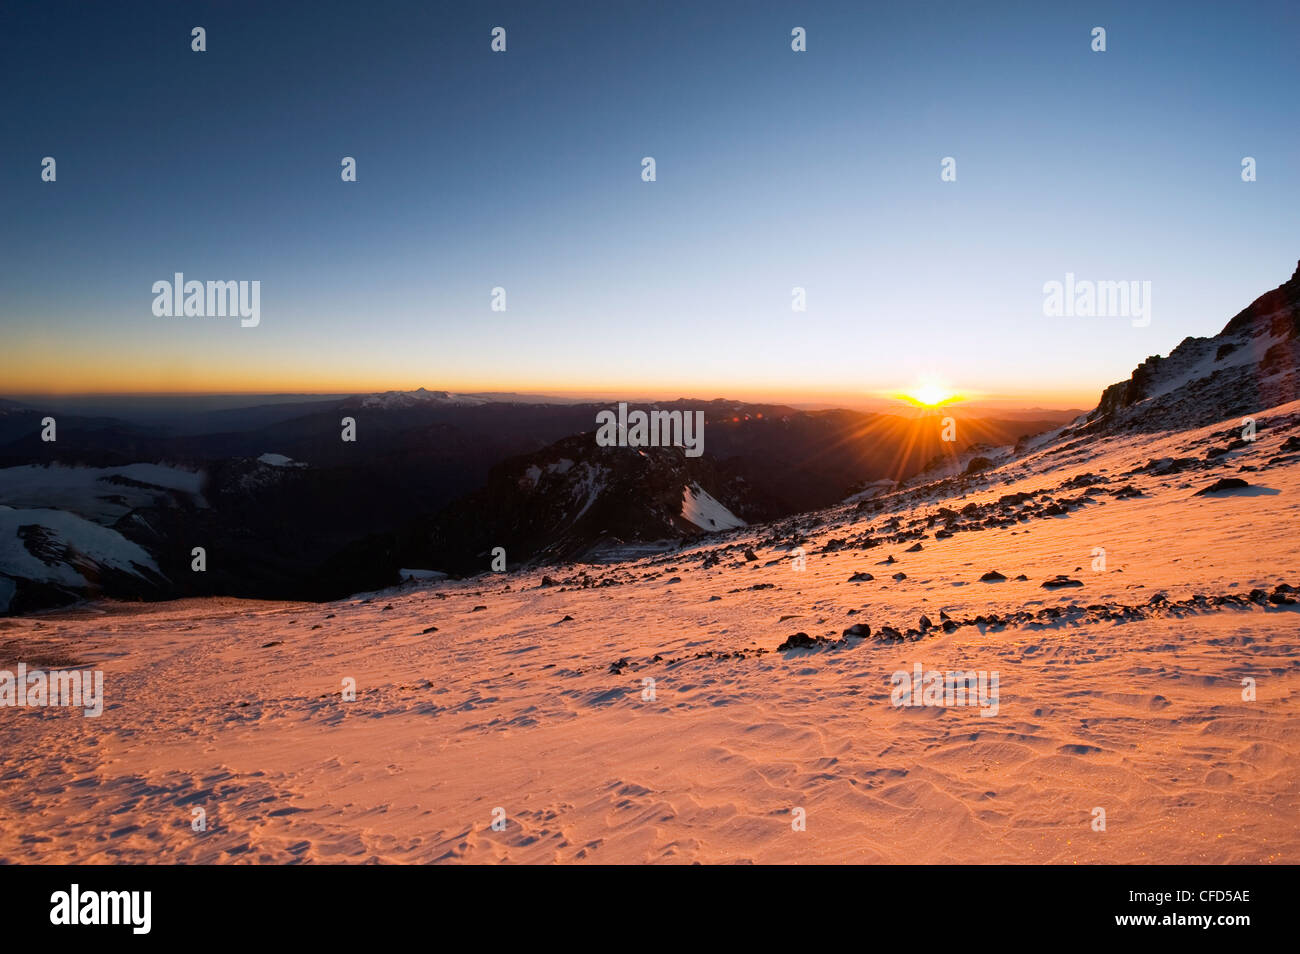 Sunrise, Aconcagua 6962m, highest peak in South America, Aconcagua Provincial Park, Andes mountains, Argentina, - Stock Image